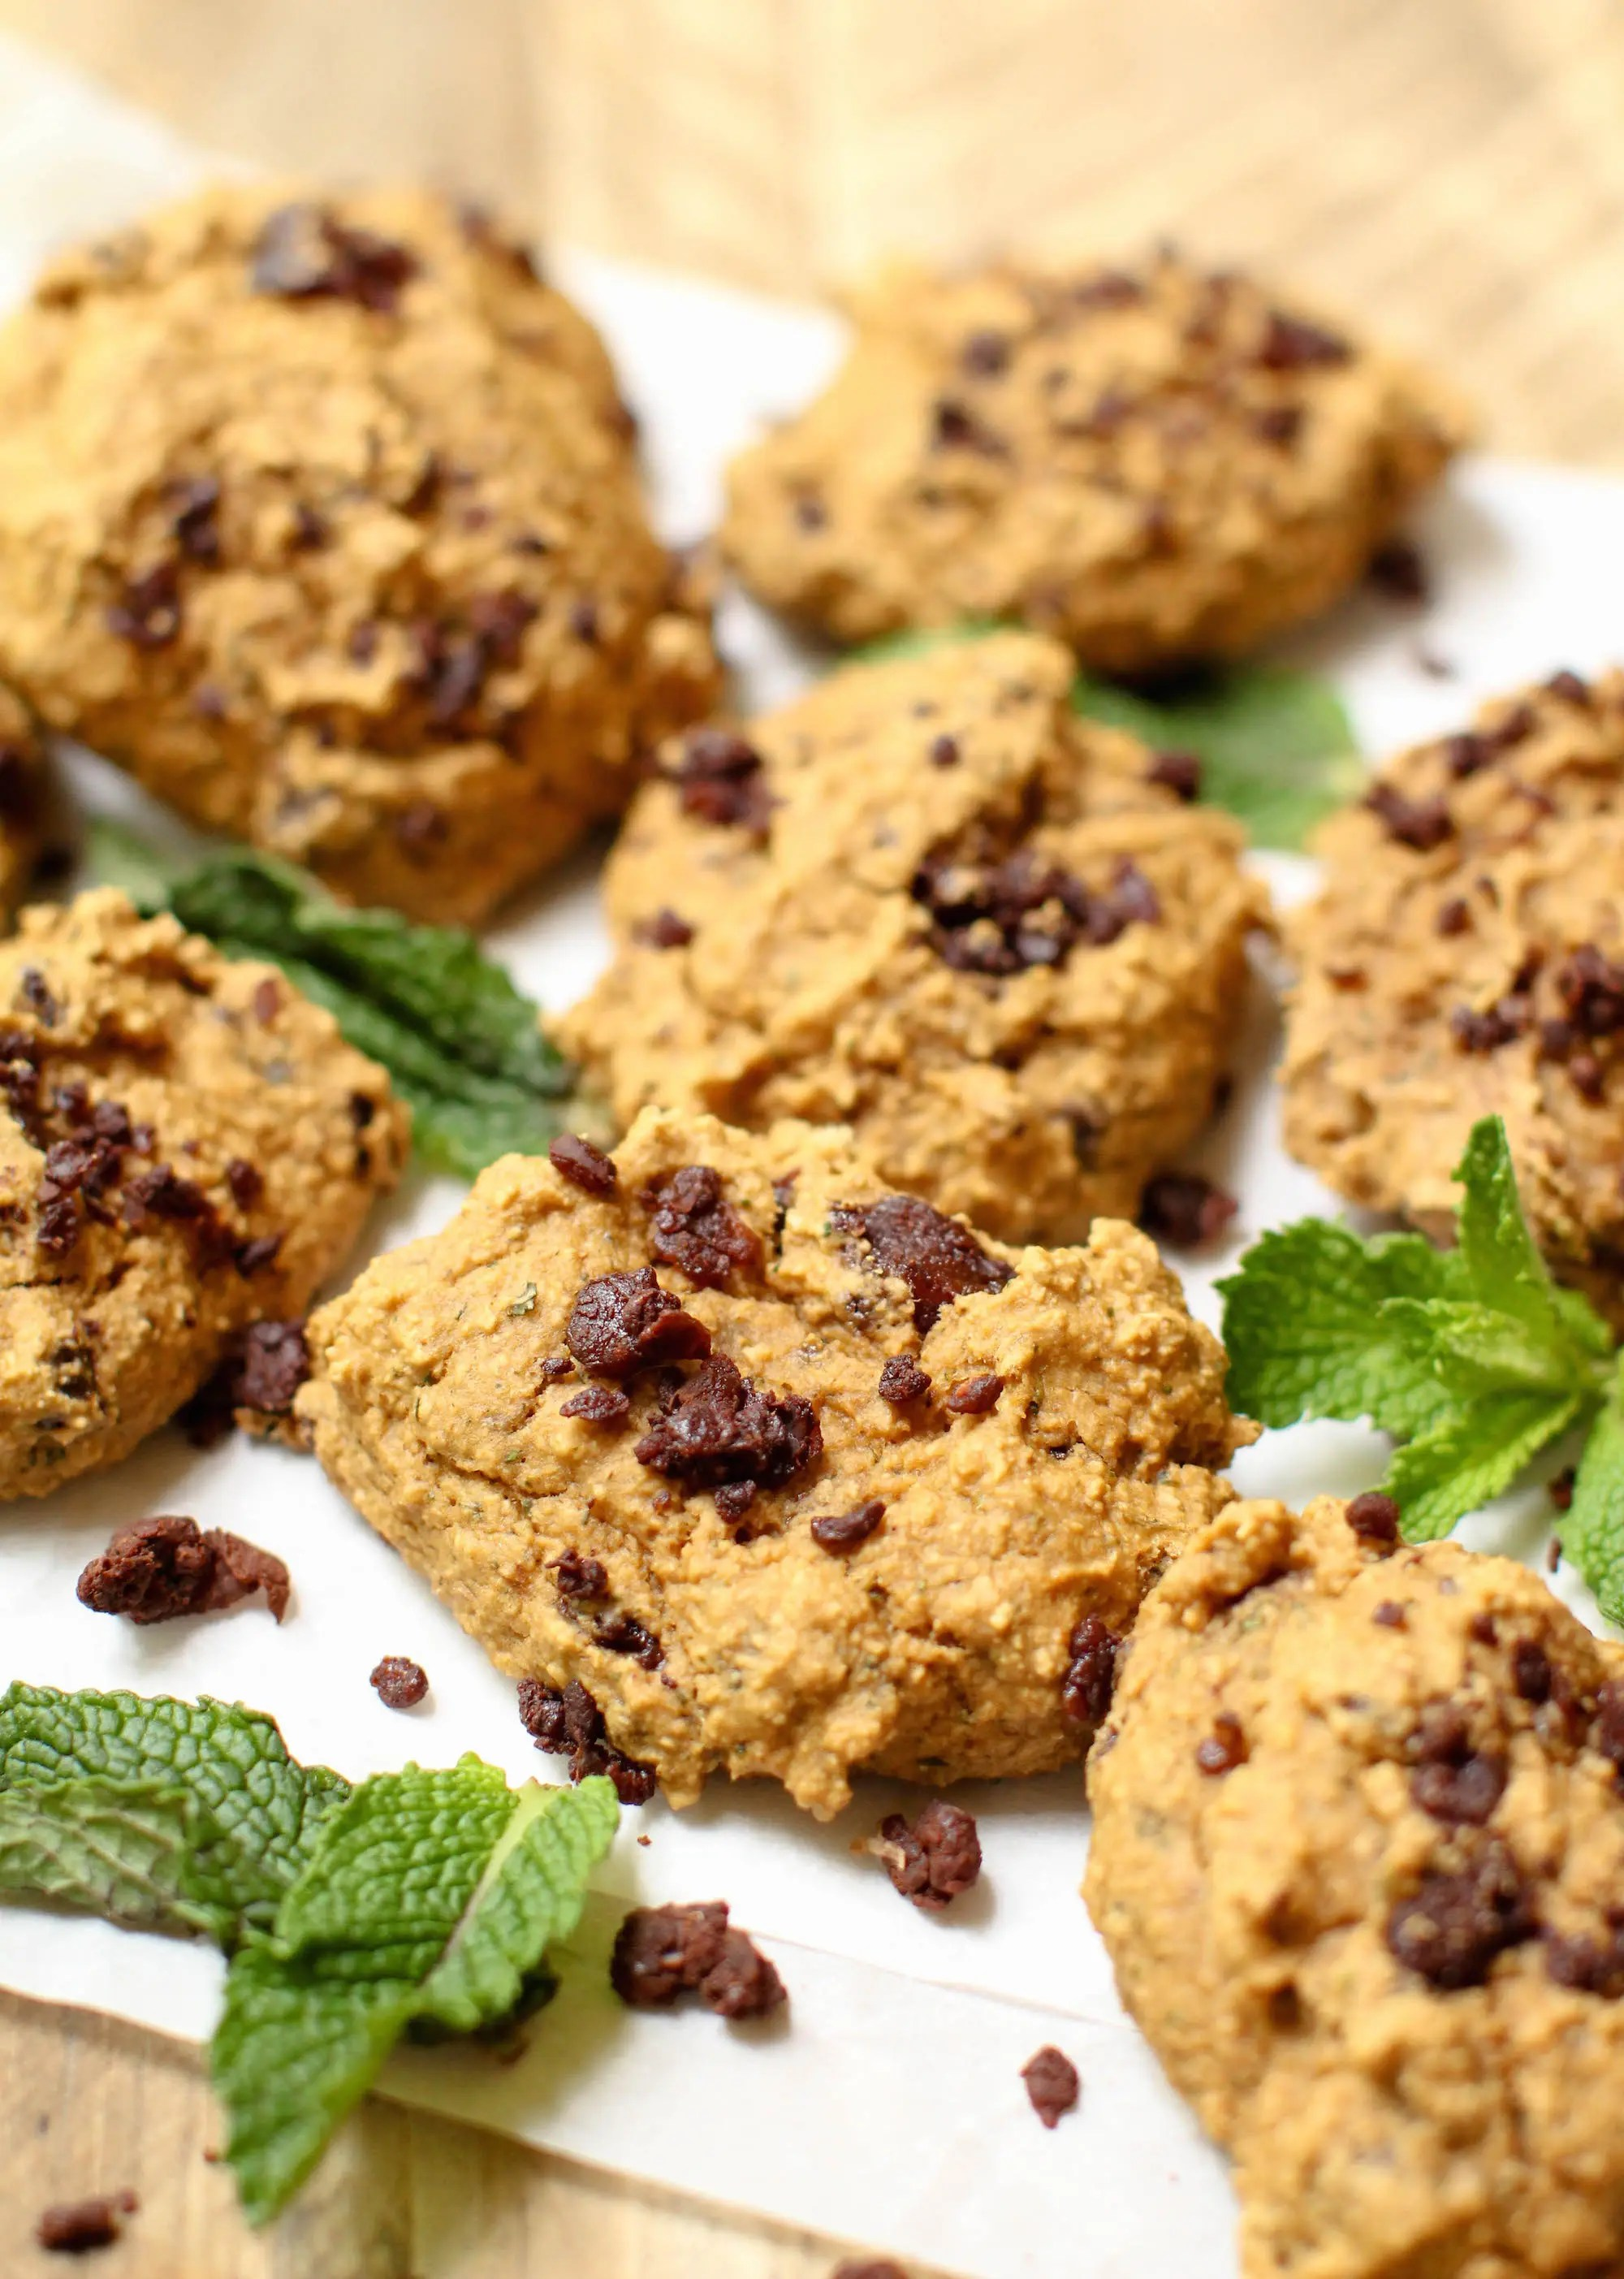 Mint Chocolate Chip Cookies (GF + HCLF) - Feasting on Fruit